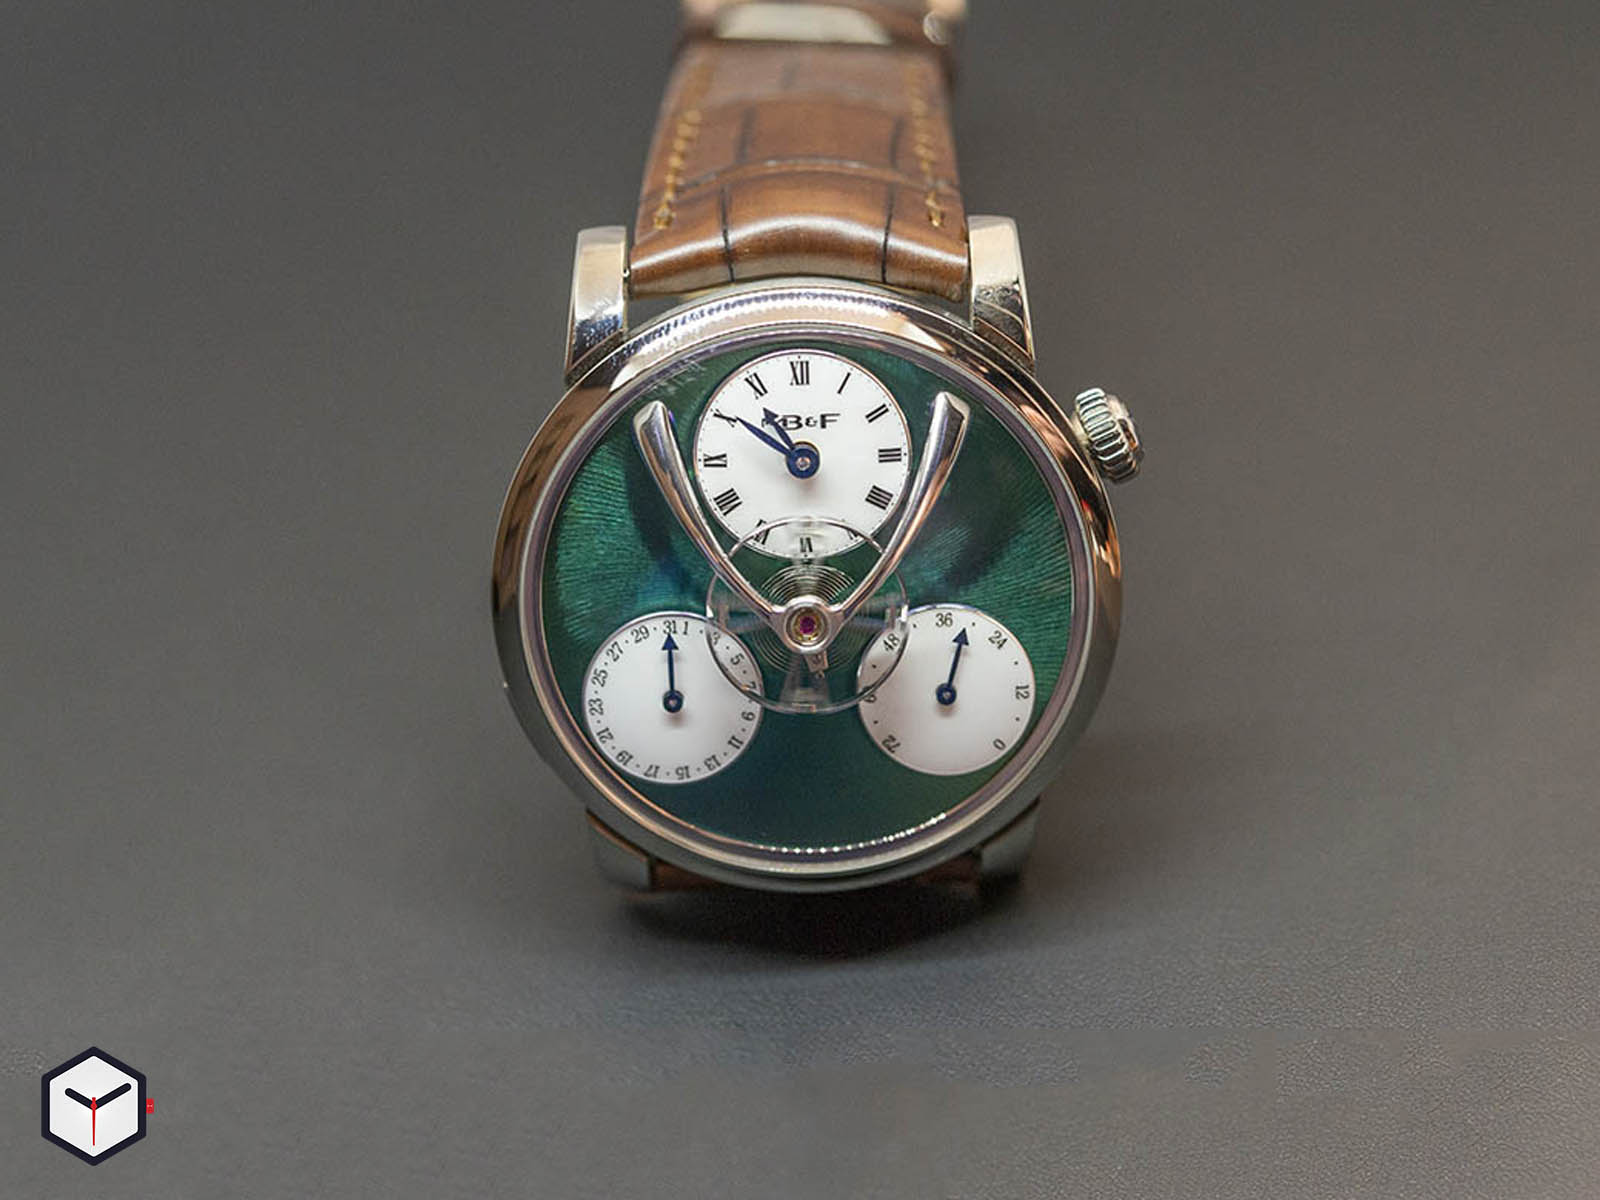 04-tl-g-mb-f-legacy-machine-split-escapement-titanium-green-dial-2.jpg